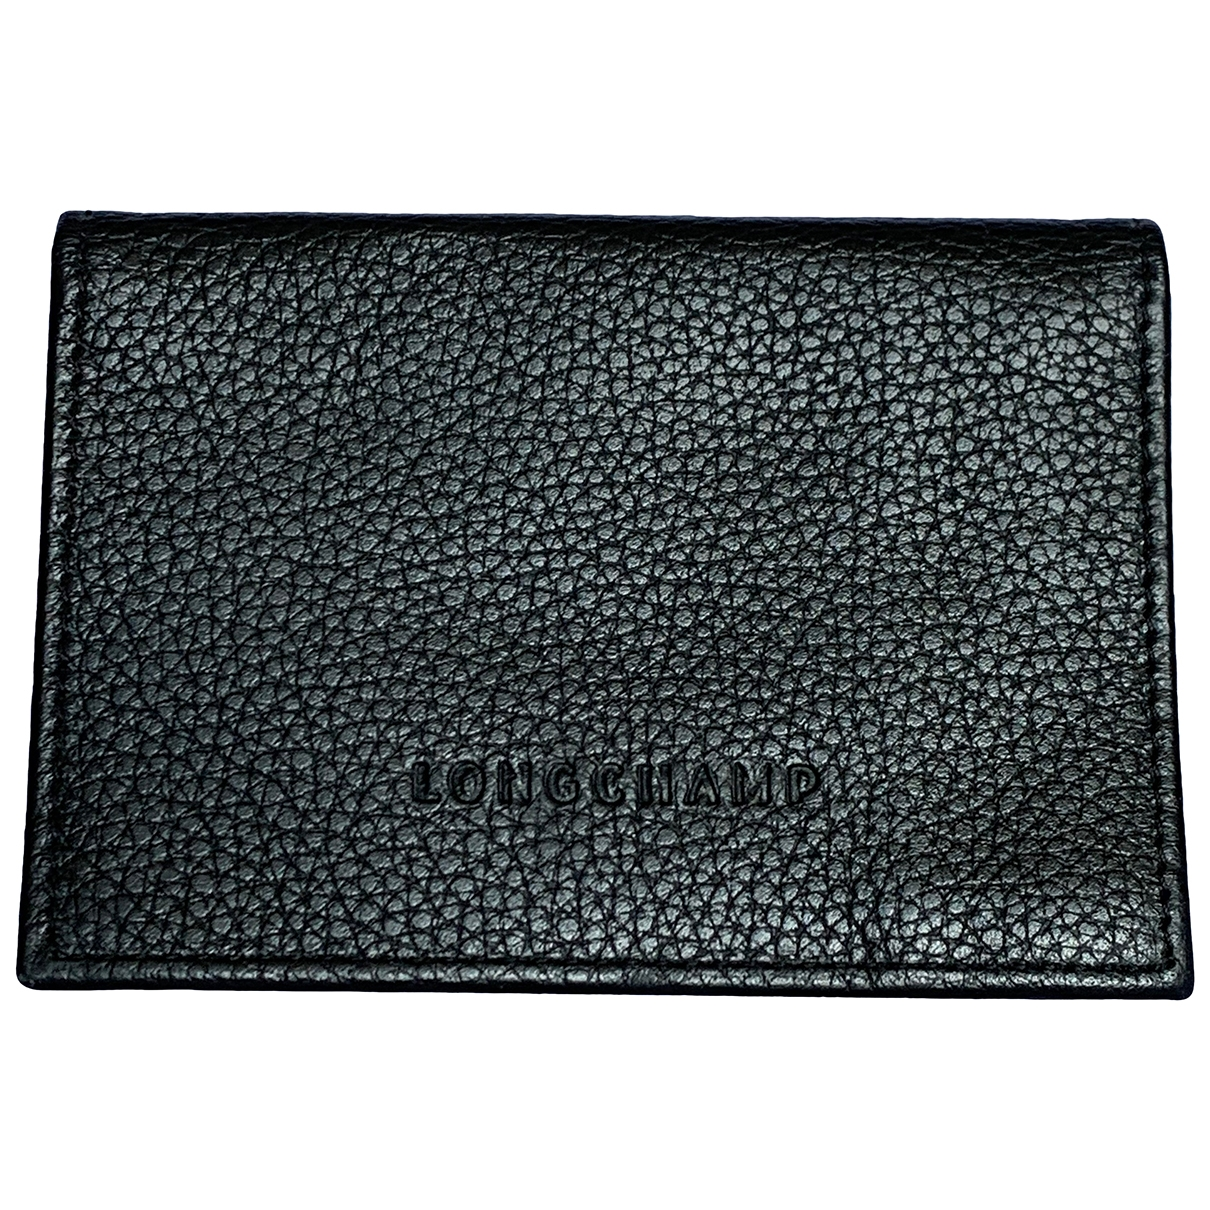 Longchamp \N Black Leather Purses, wallet & cases for Women \N